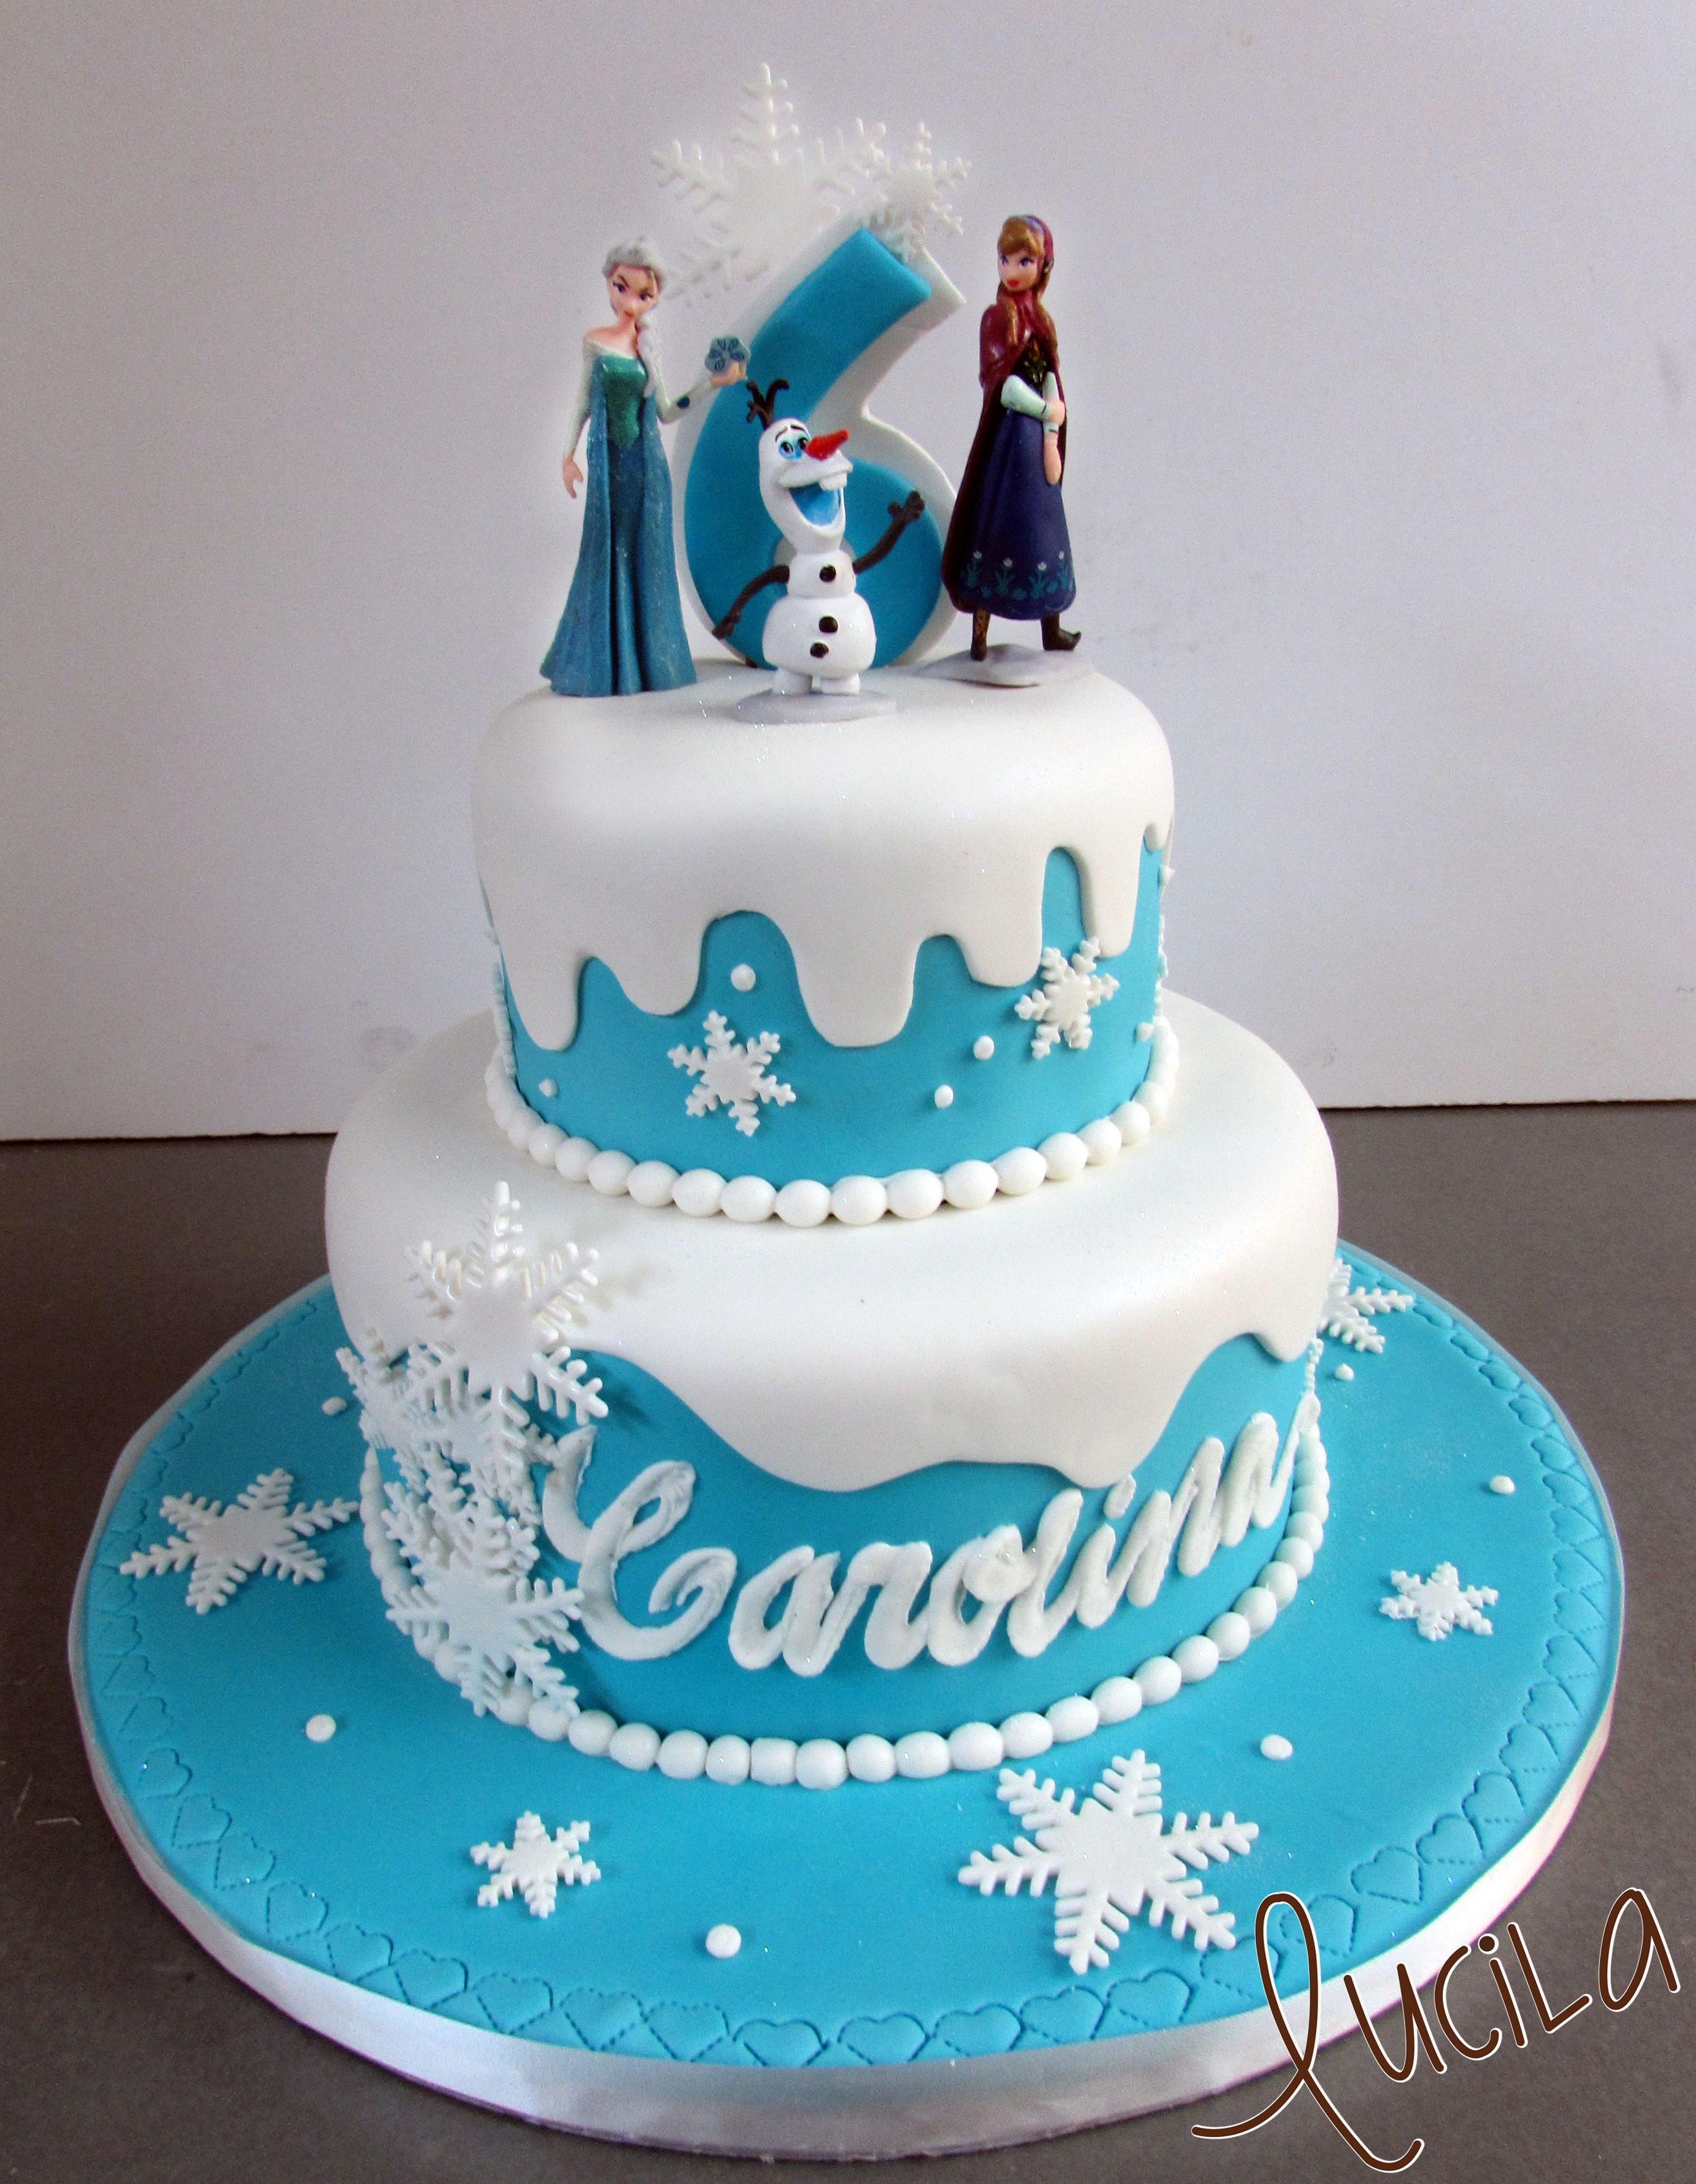 Images Of Frozen Character Cake : Two tier fondant cake with Frozen characters on top ...